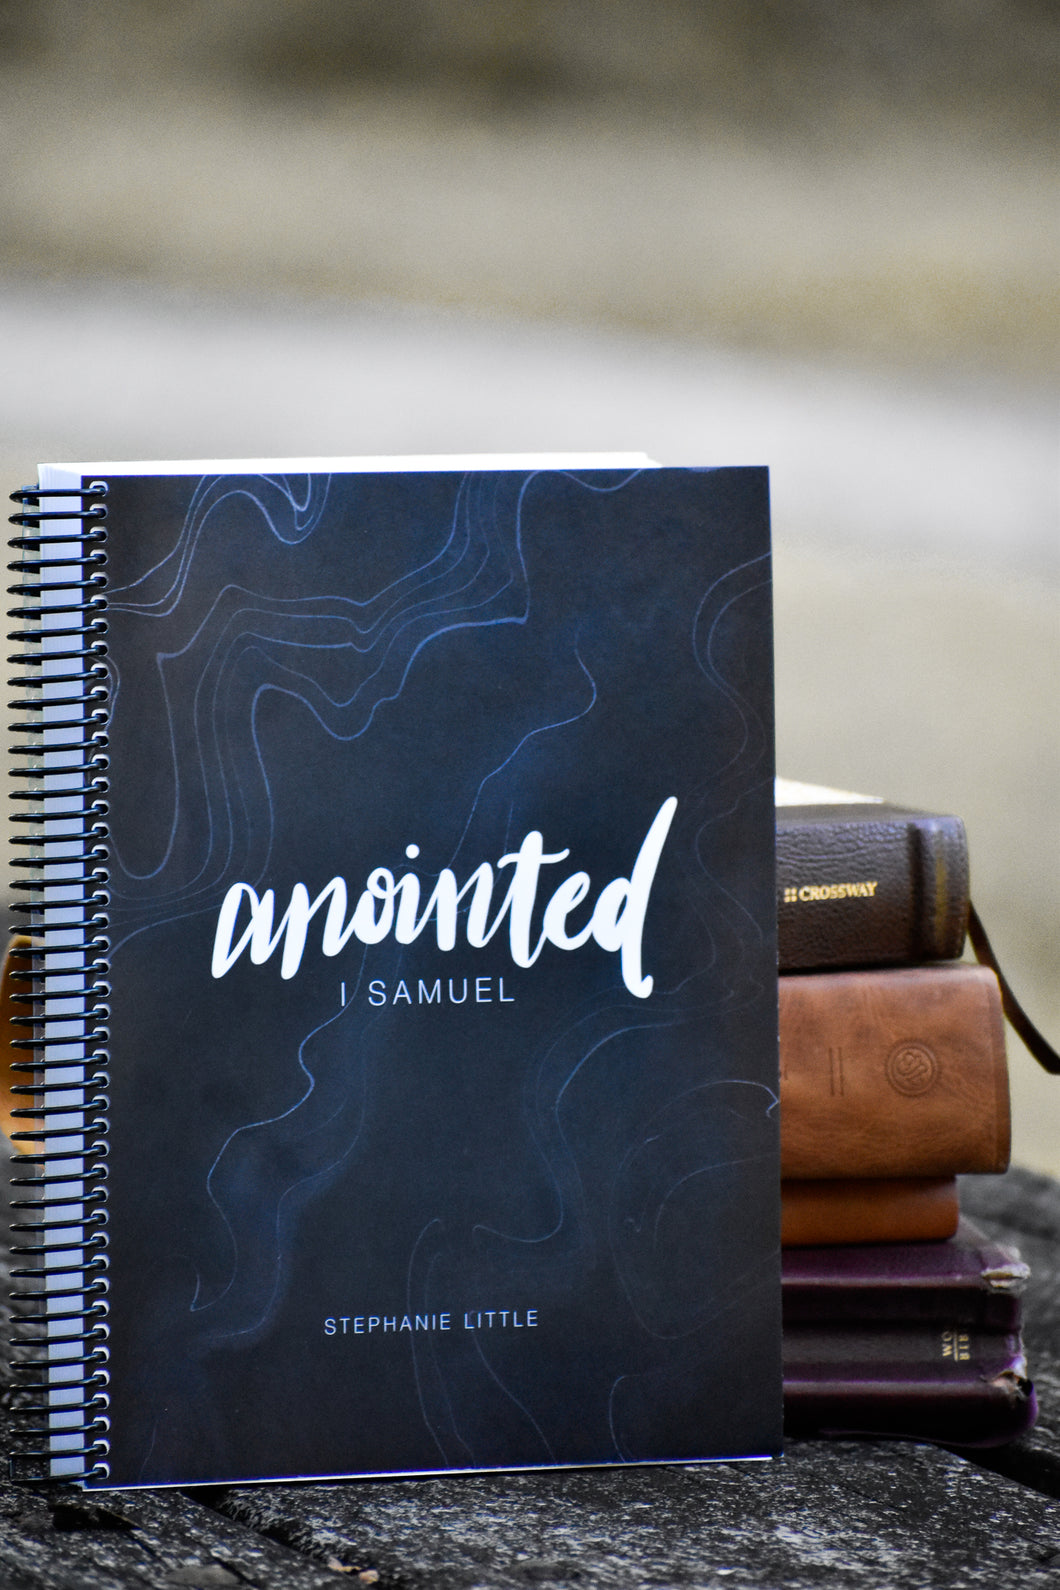 Anointed - A Study of 1 Samuel